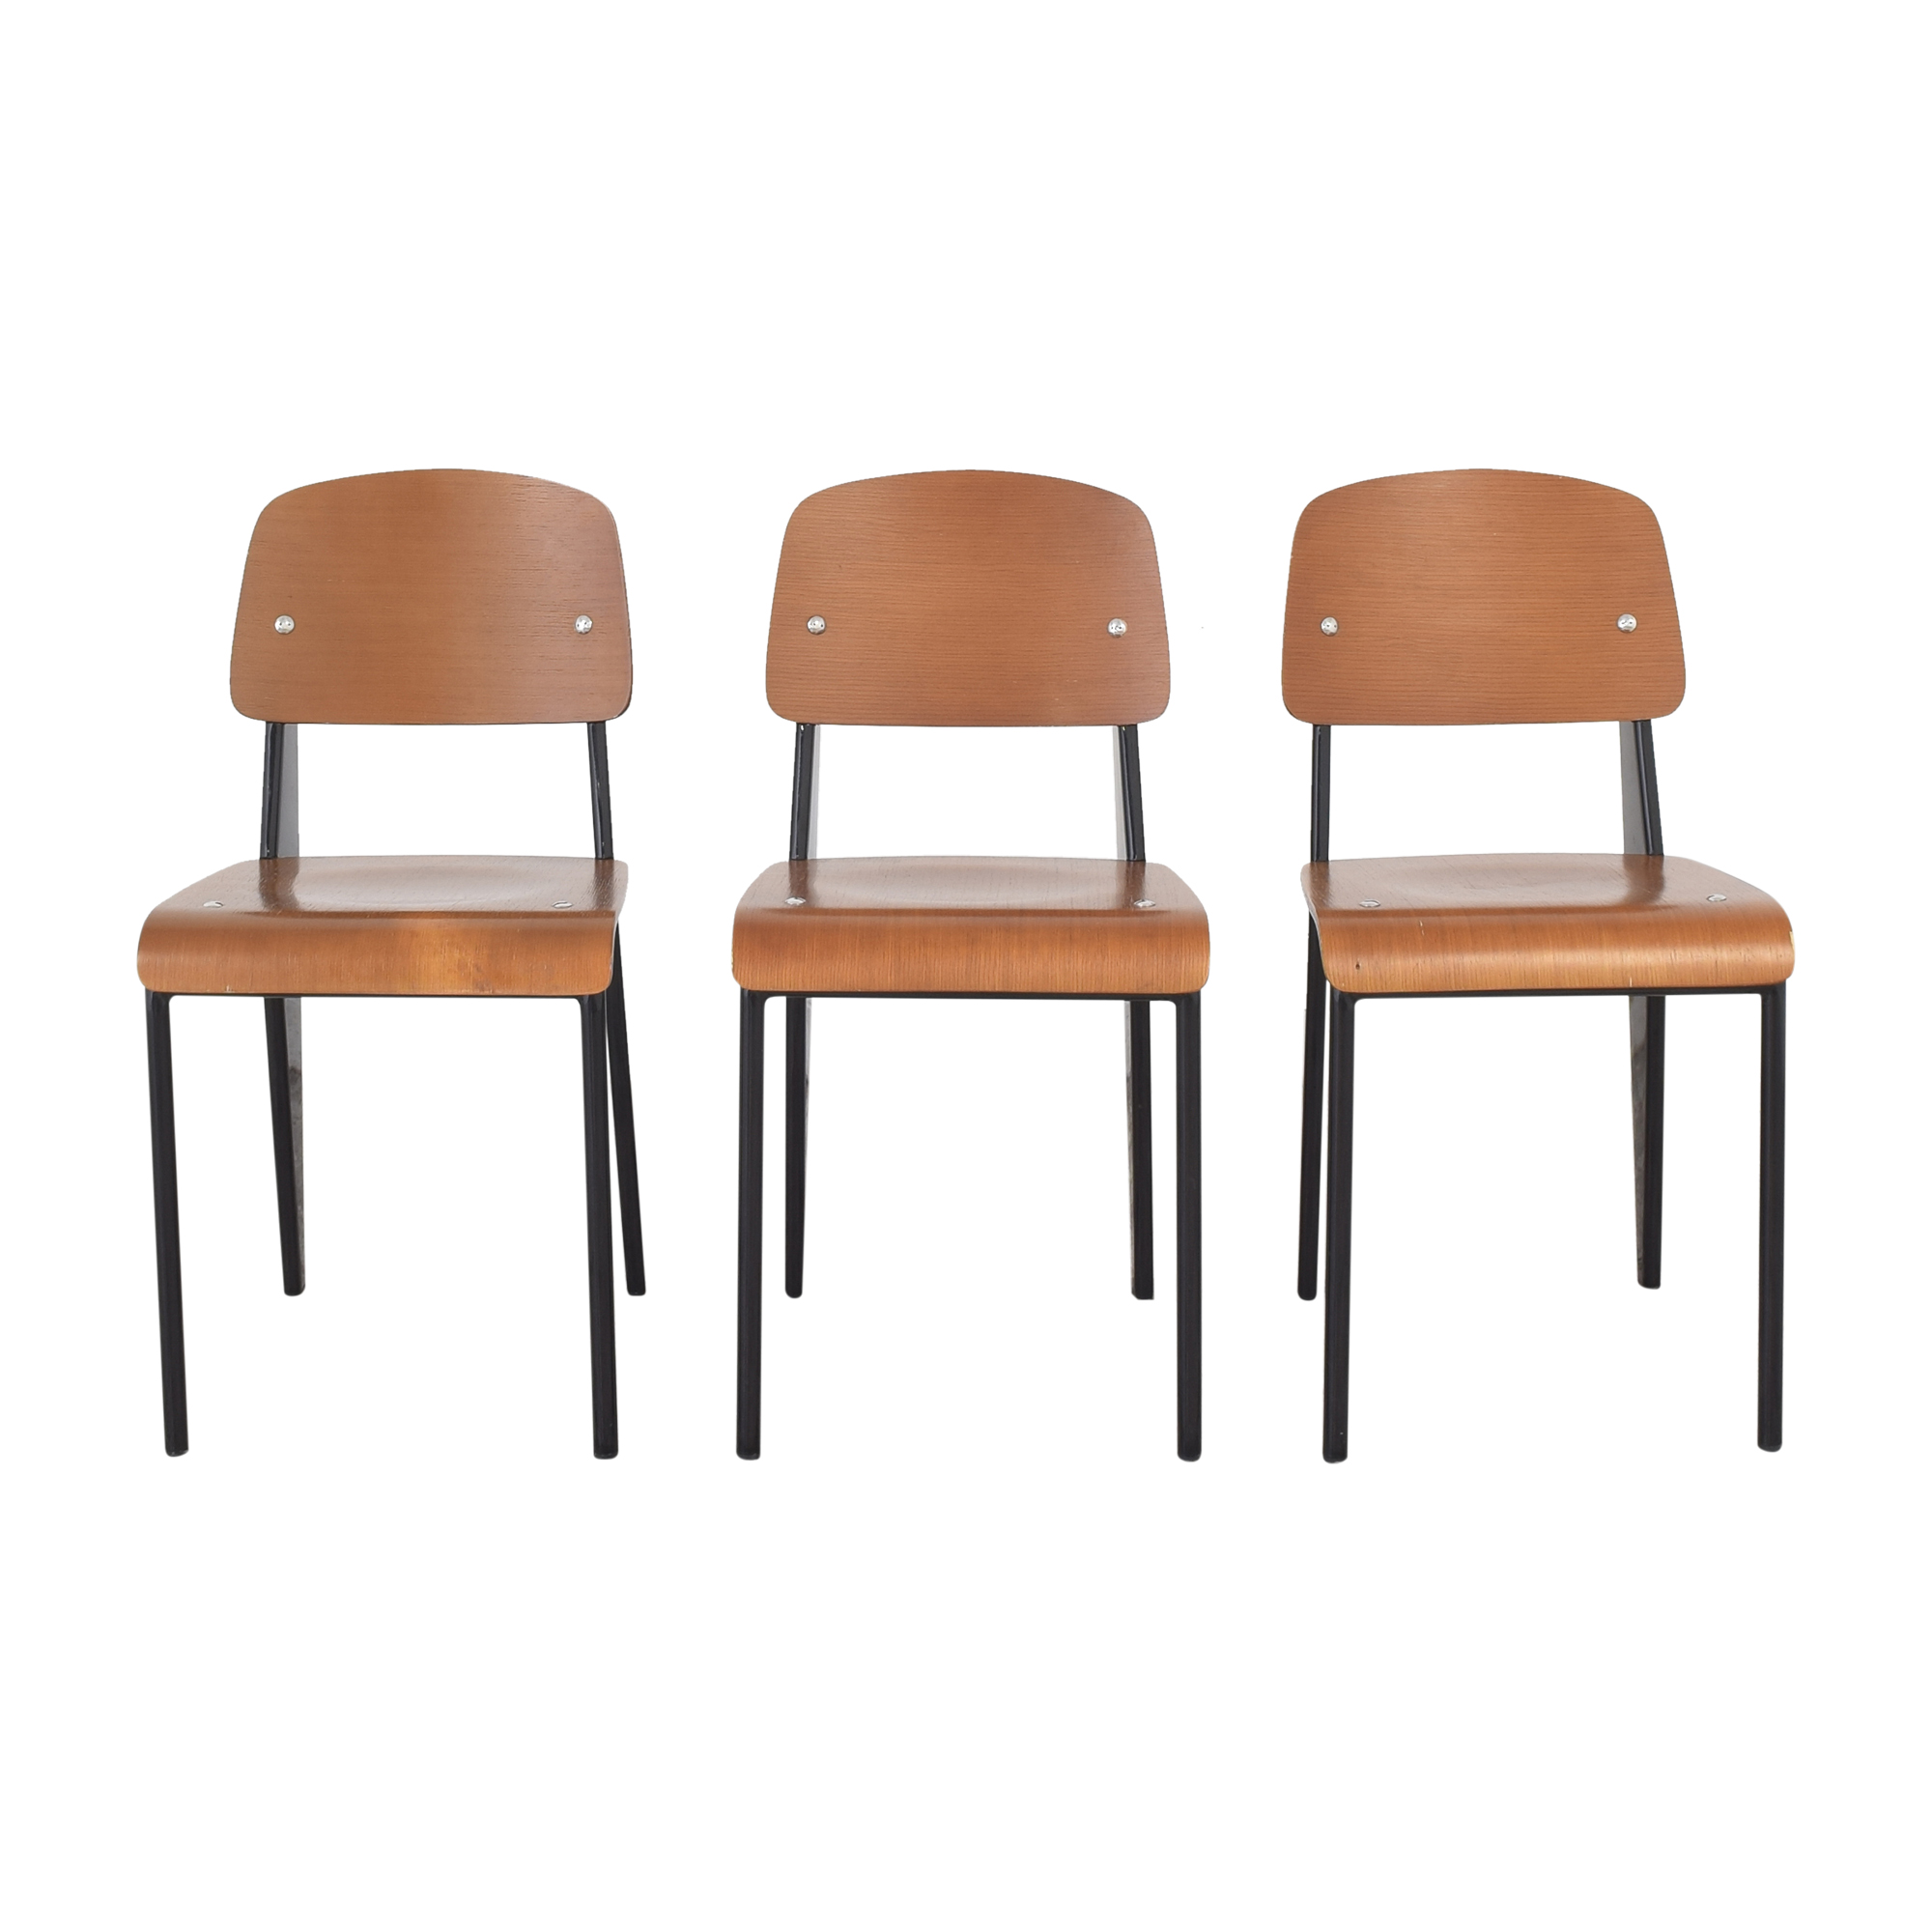 Jean Prouve-Style Chairs used